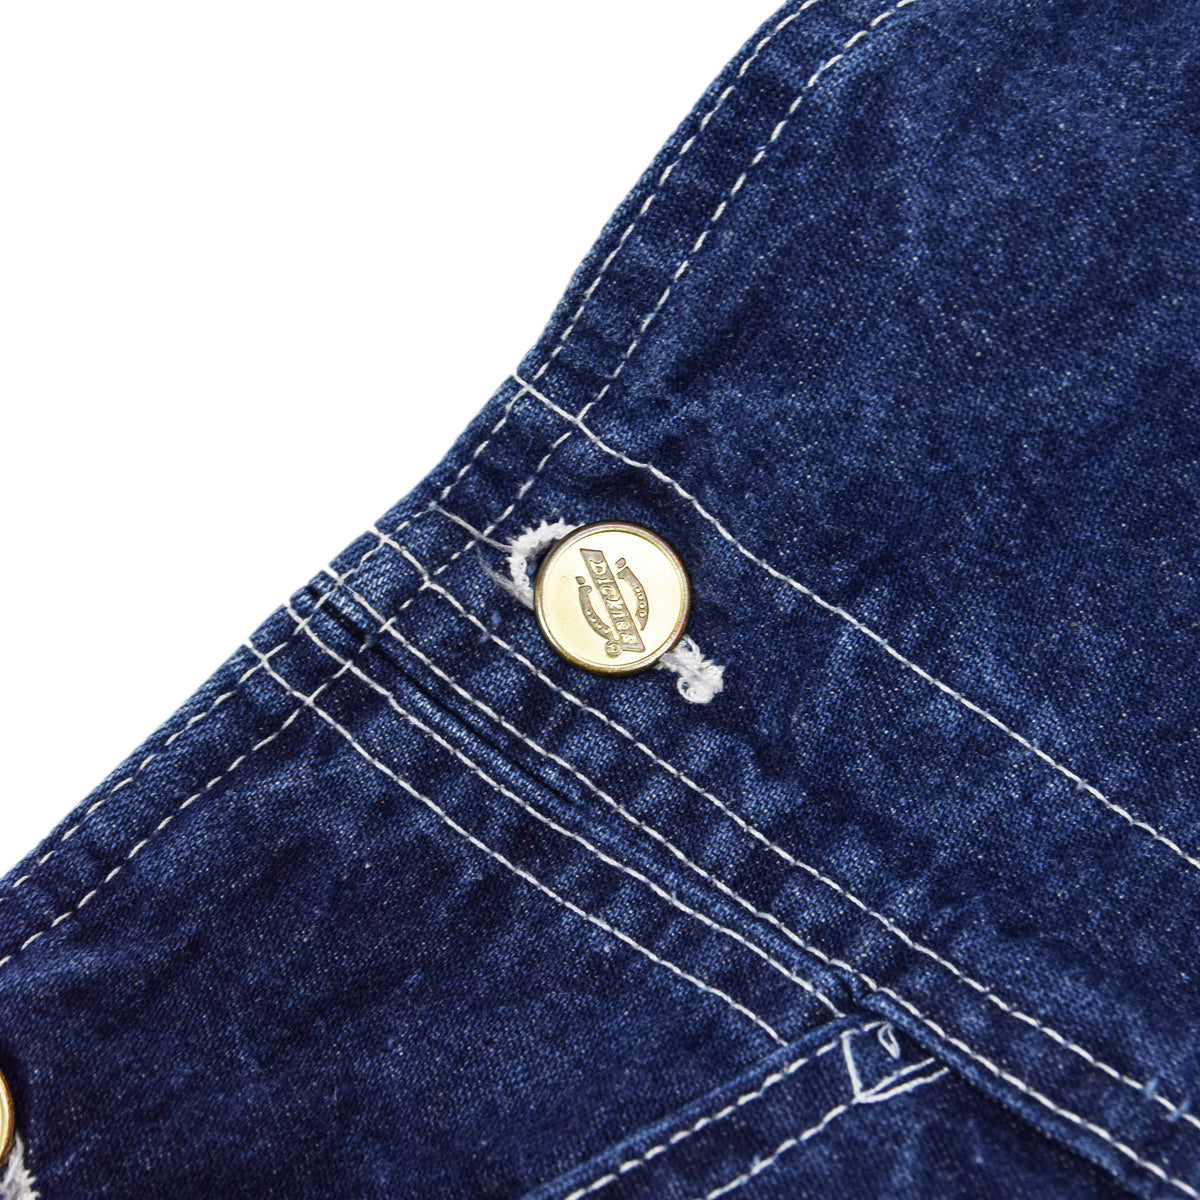 Vintage Dickies Denim Work Dungarees Blue Bib Overalls Trousers M branded buttons